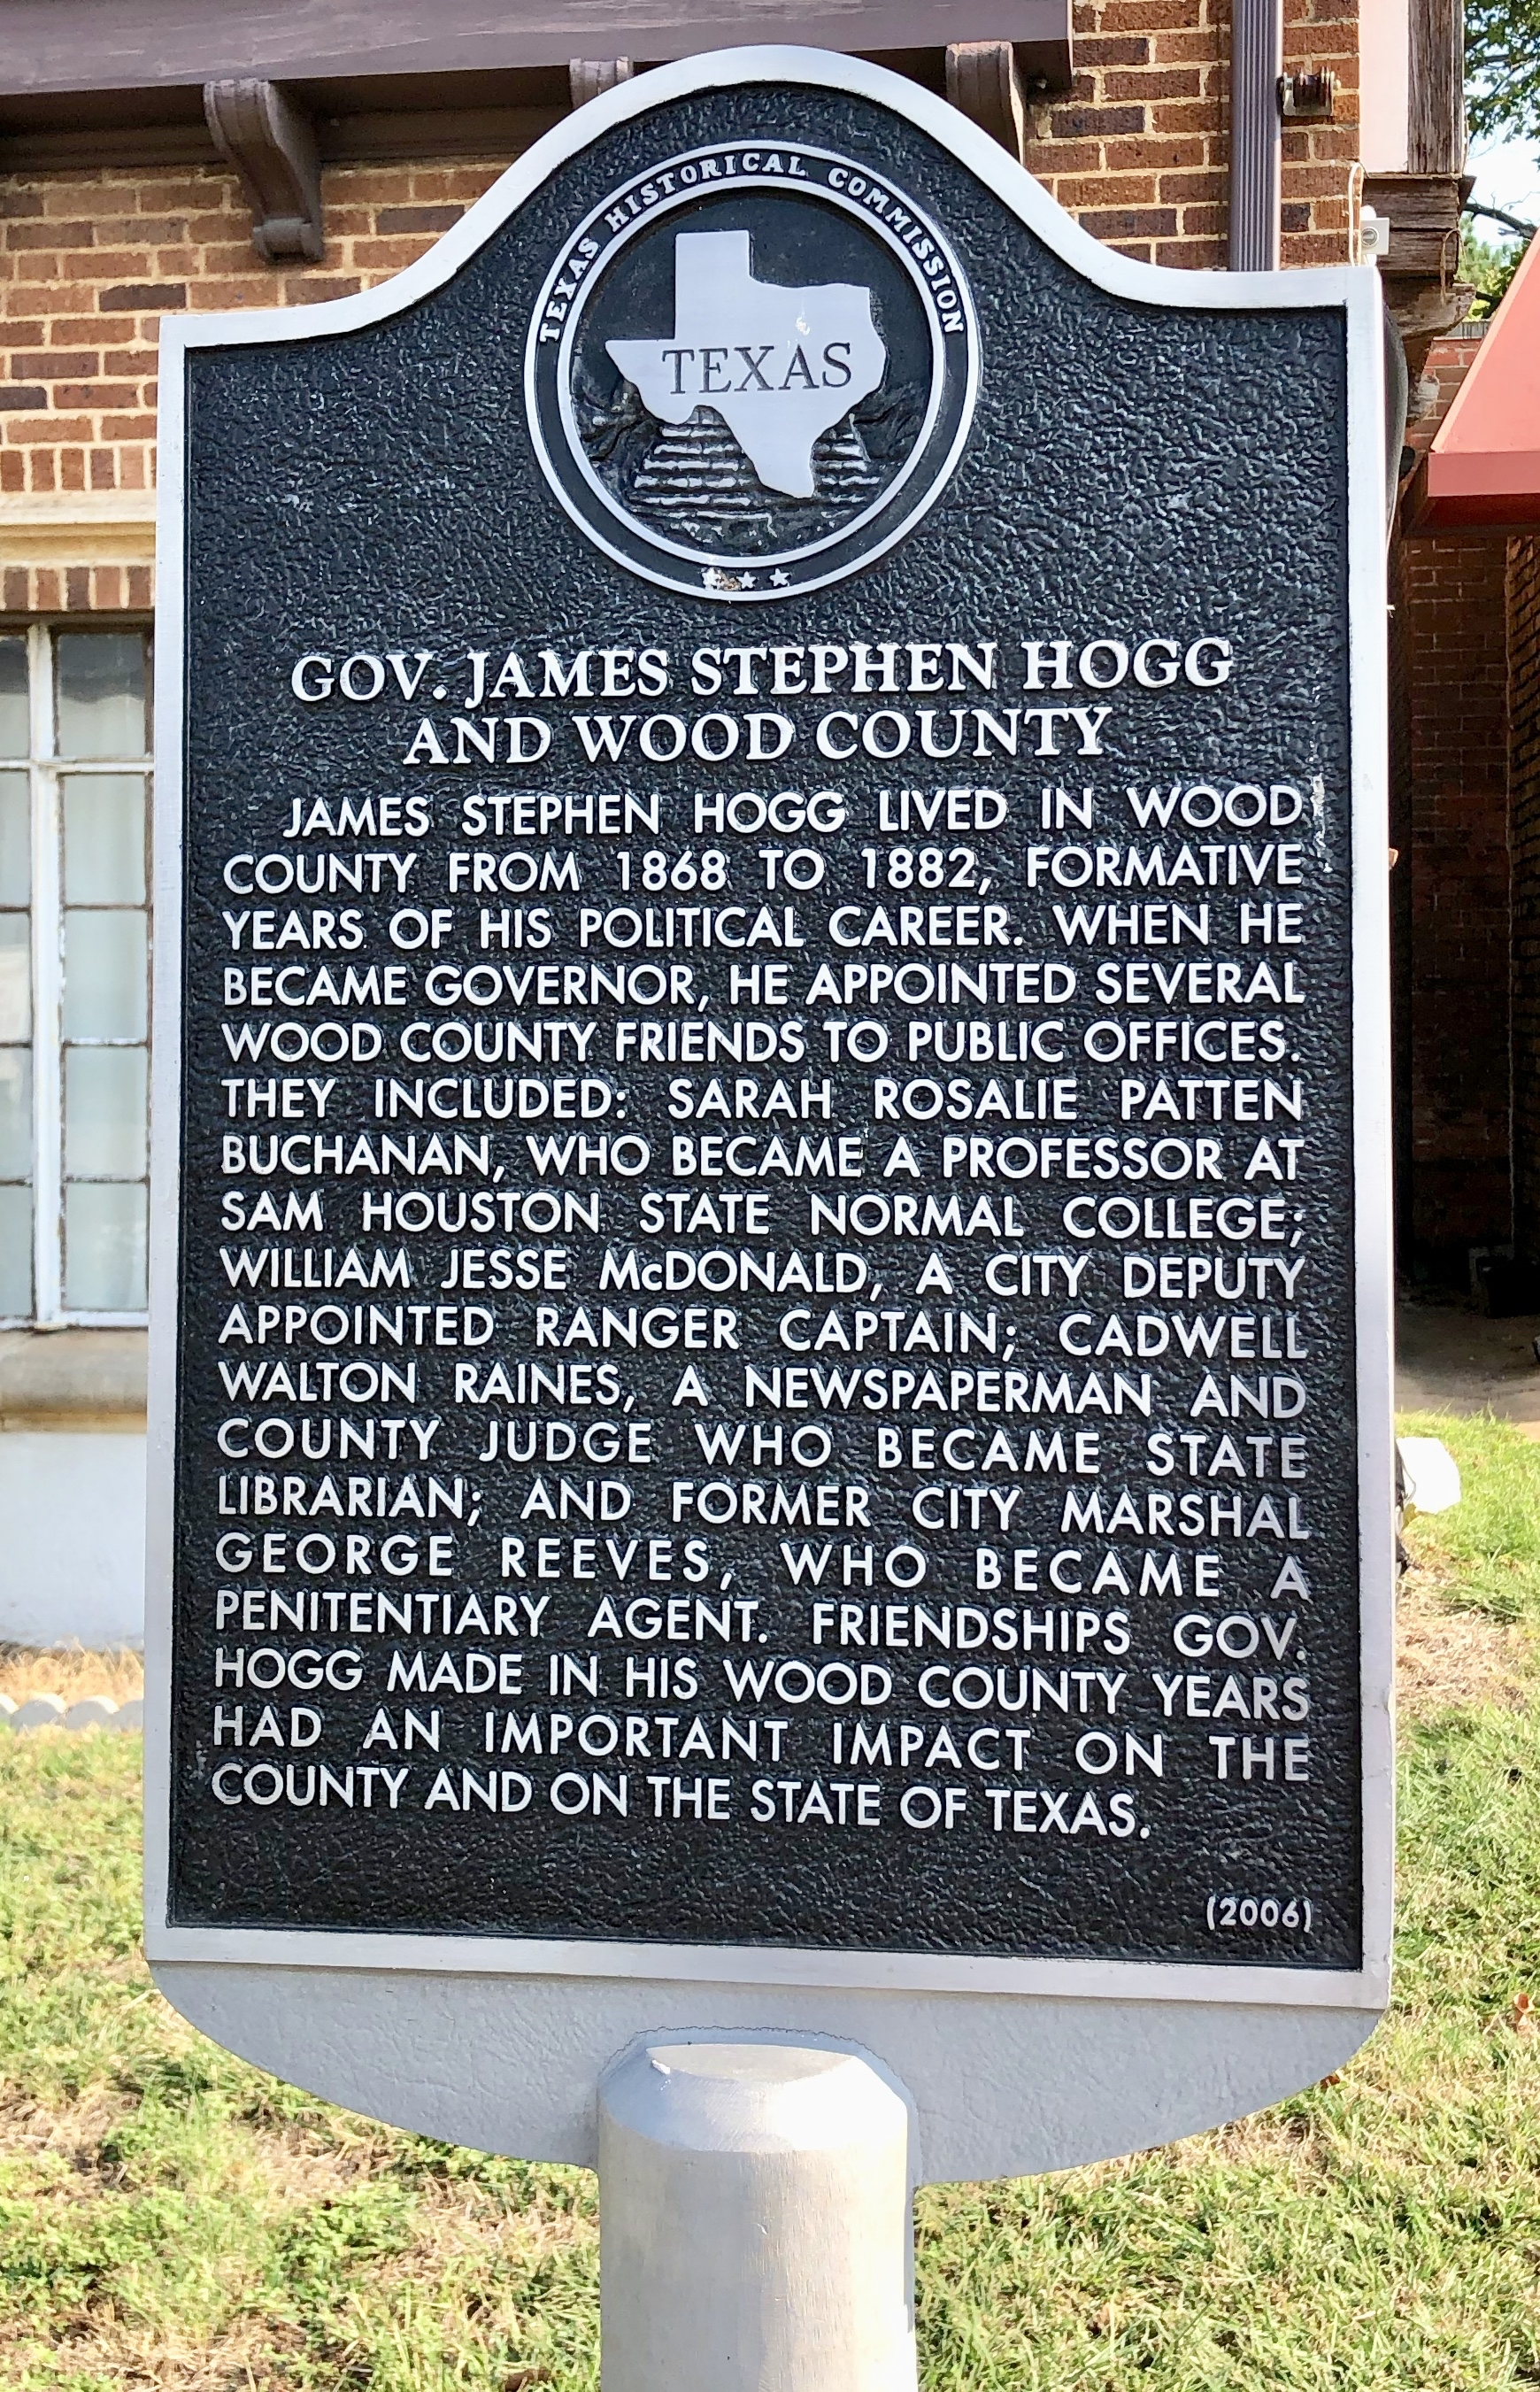 Gov. James Stephen Hogg and Wood County Marker